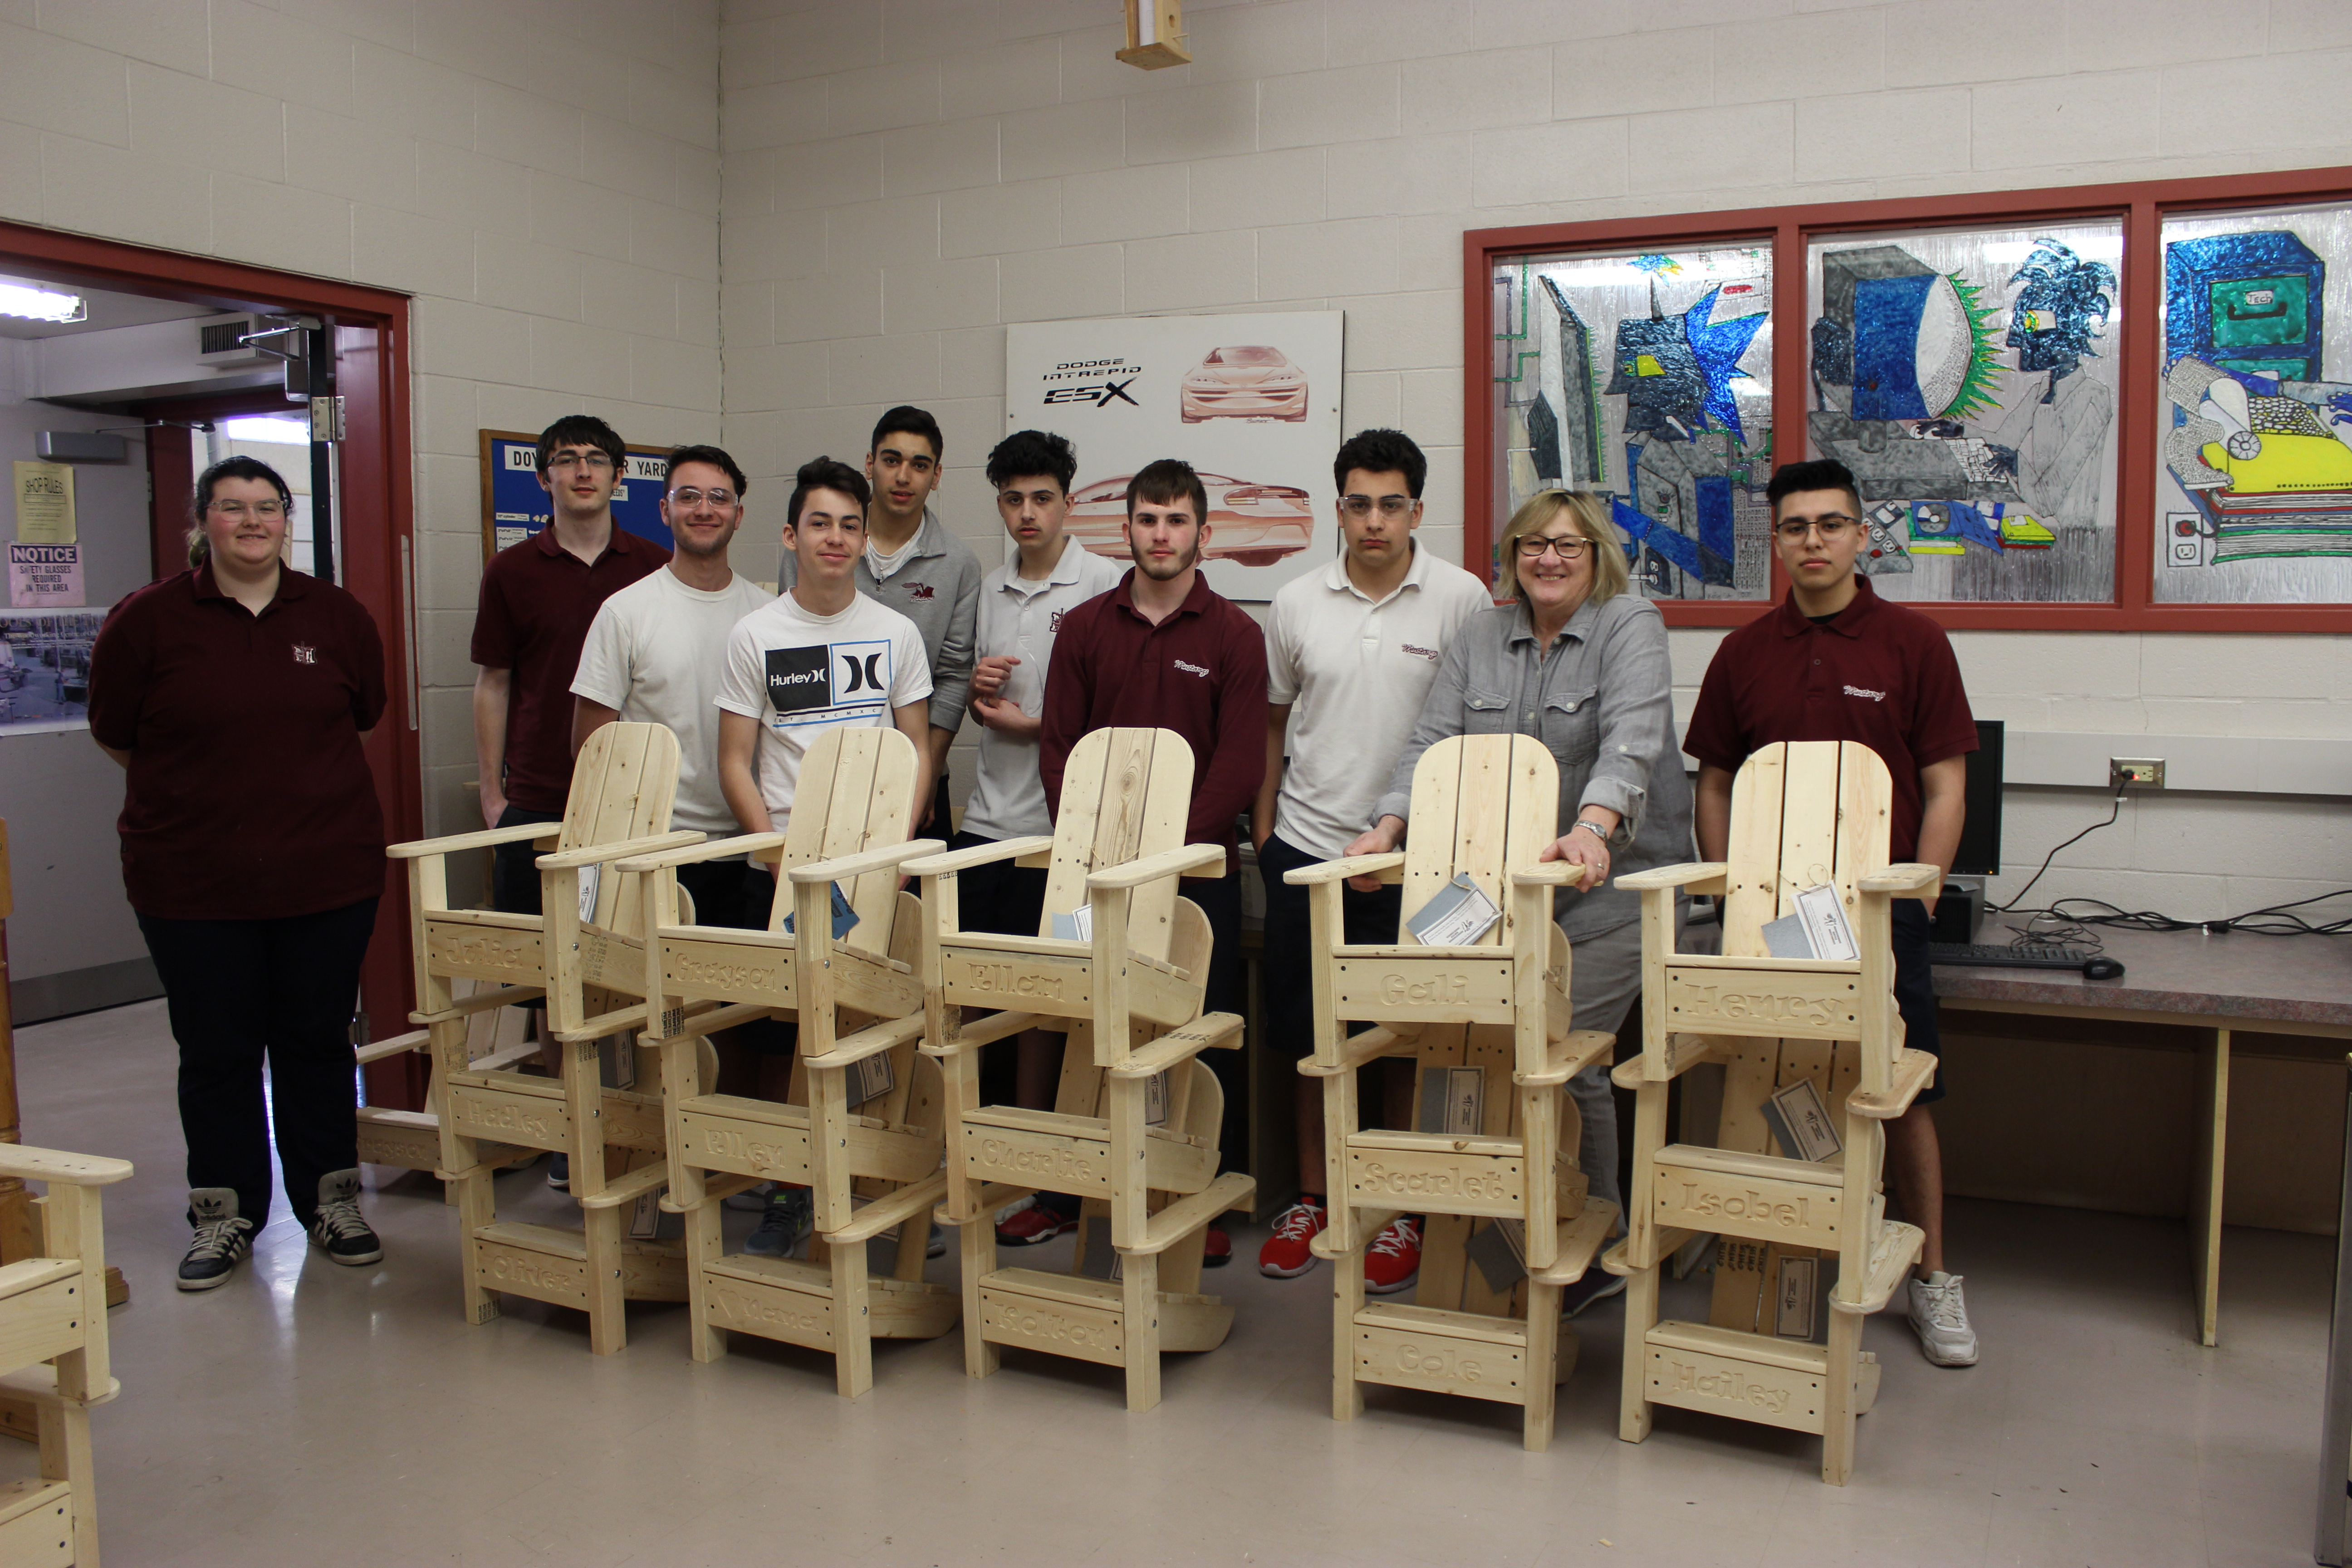 Chairs made by students